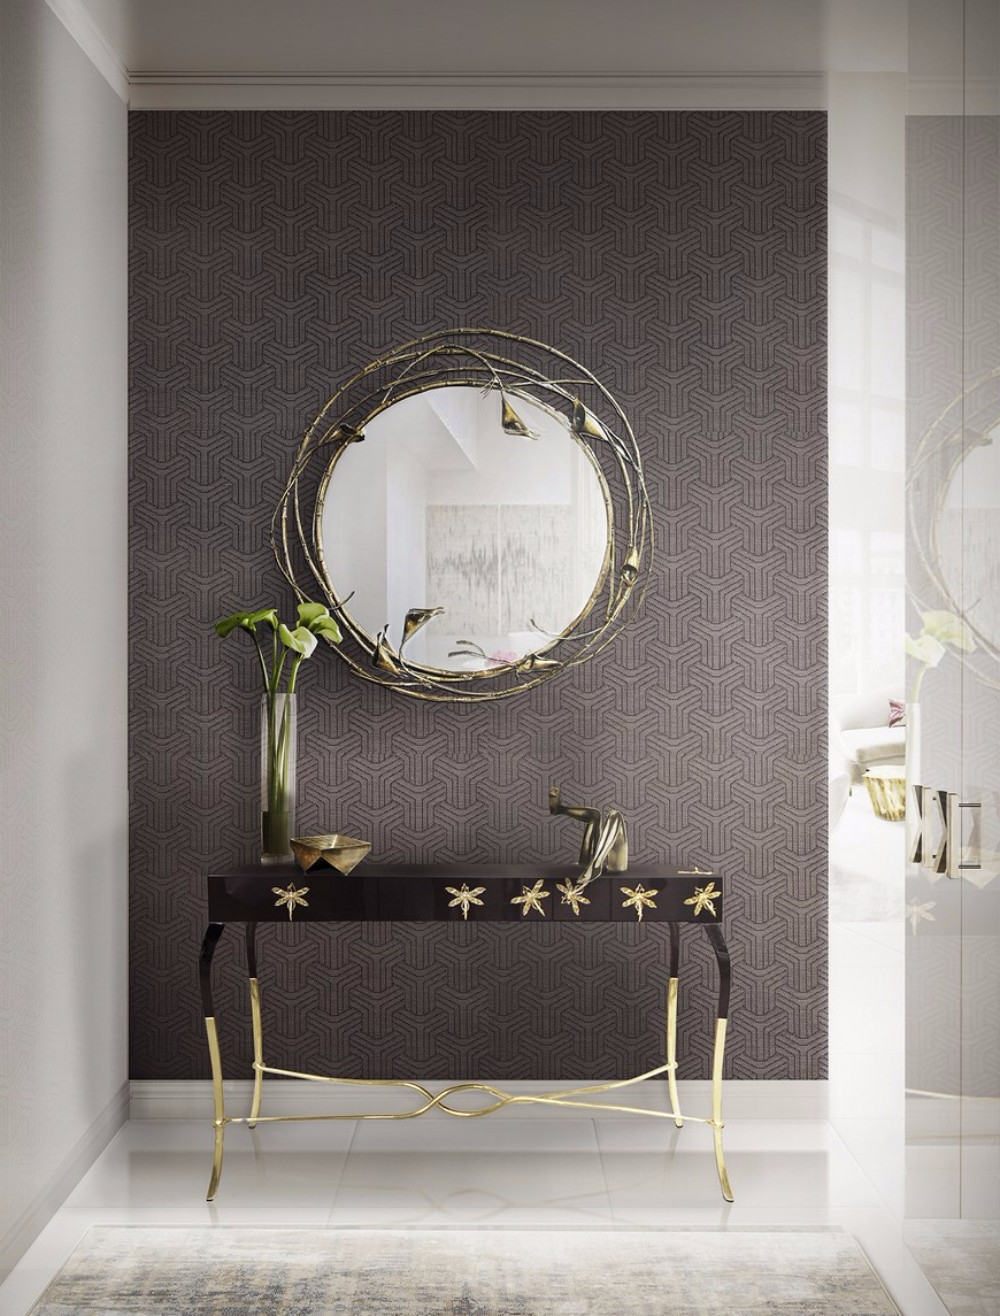 20 Exquisite Wall Mirror Designs For Your Living Room Regarding Trendy Mirrored Wall Mirrors (View 1 of 20)